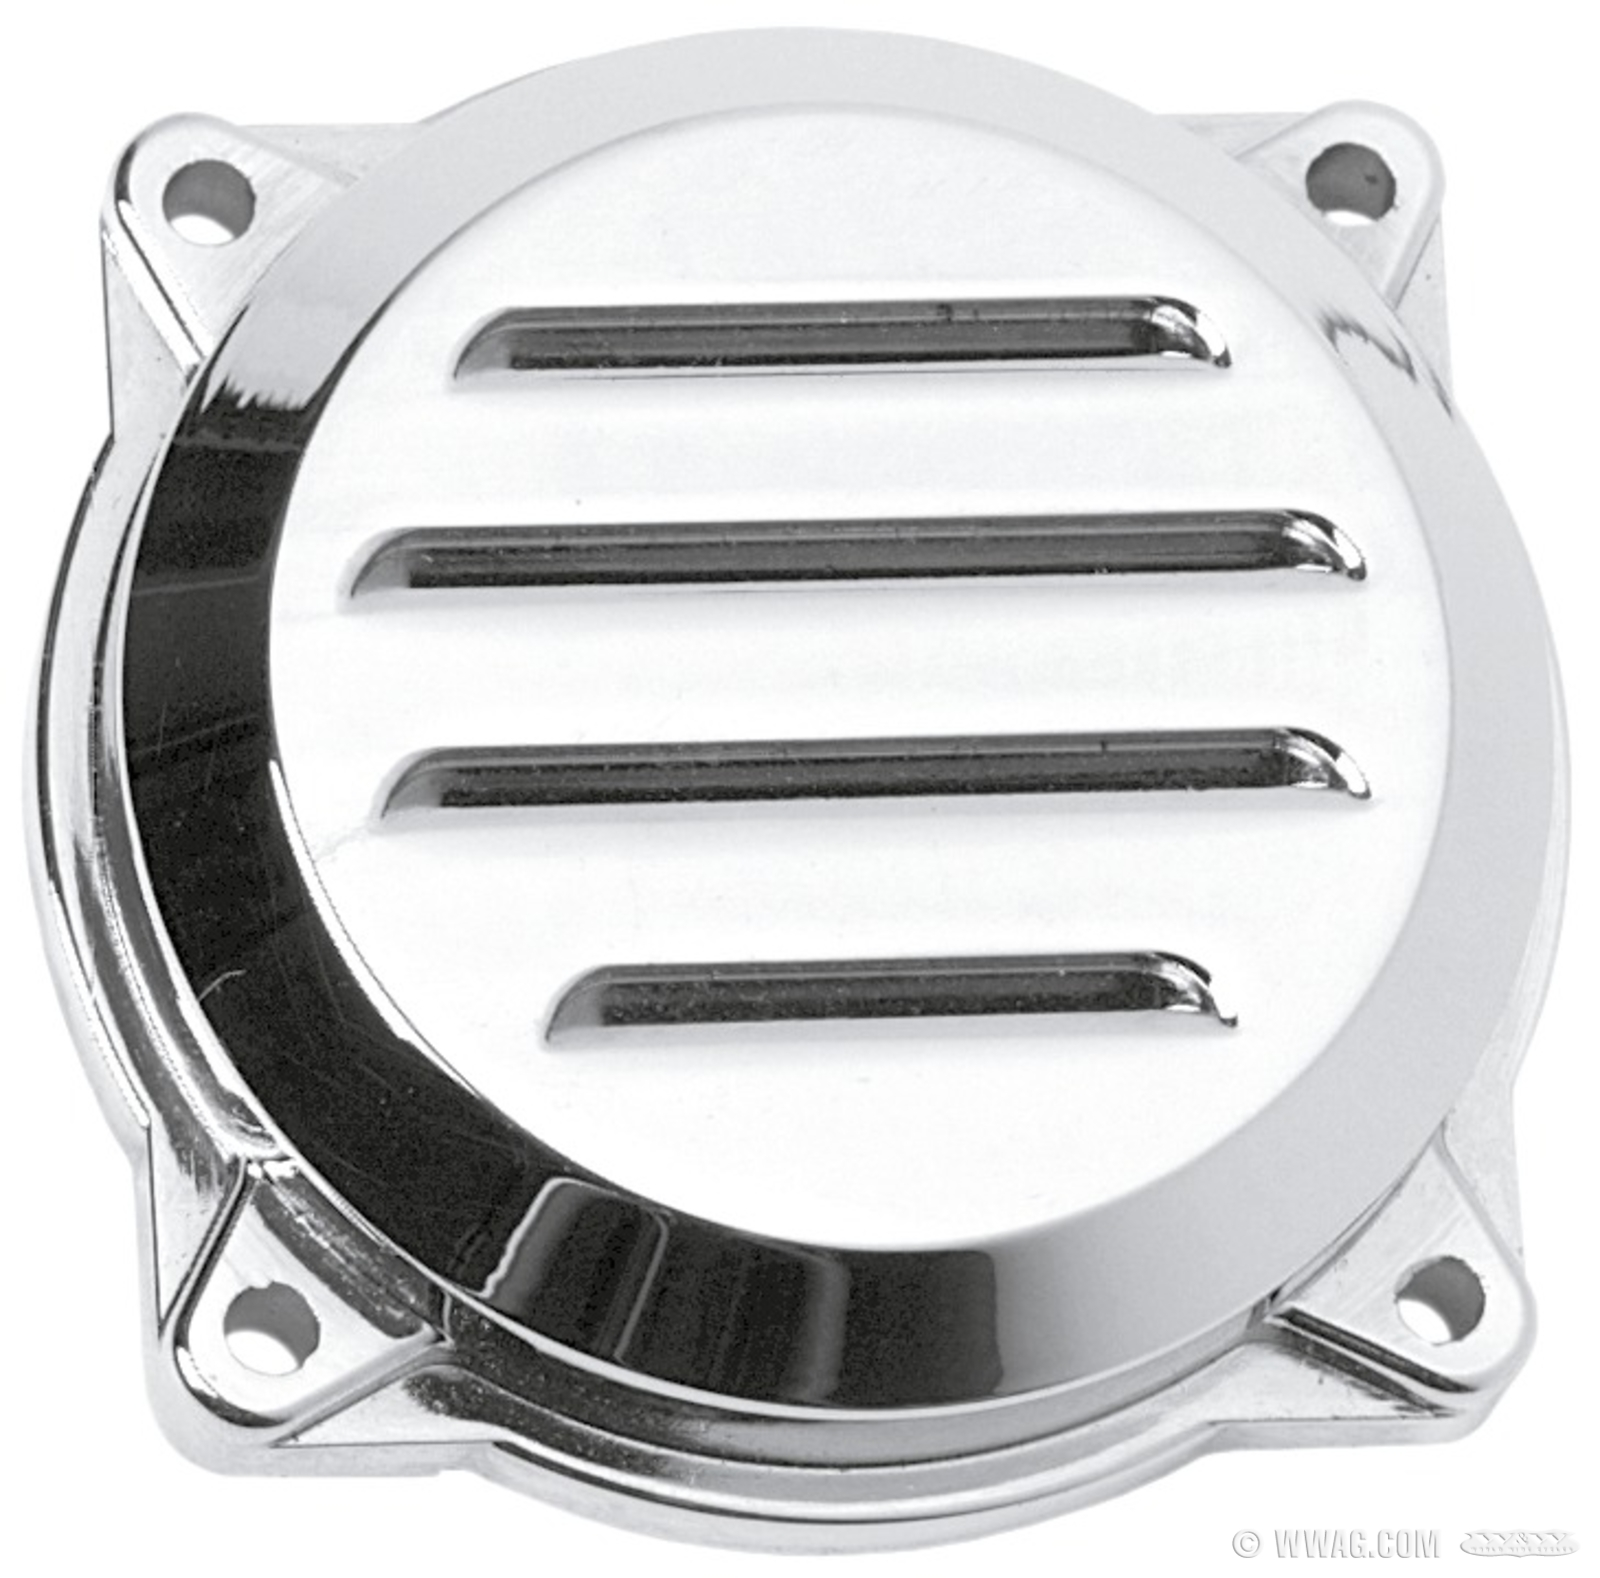 W&W Cycles - Carburetor and Injection > Ribbed Covers for CV